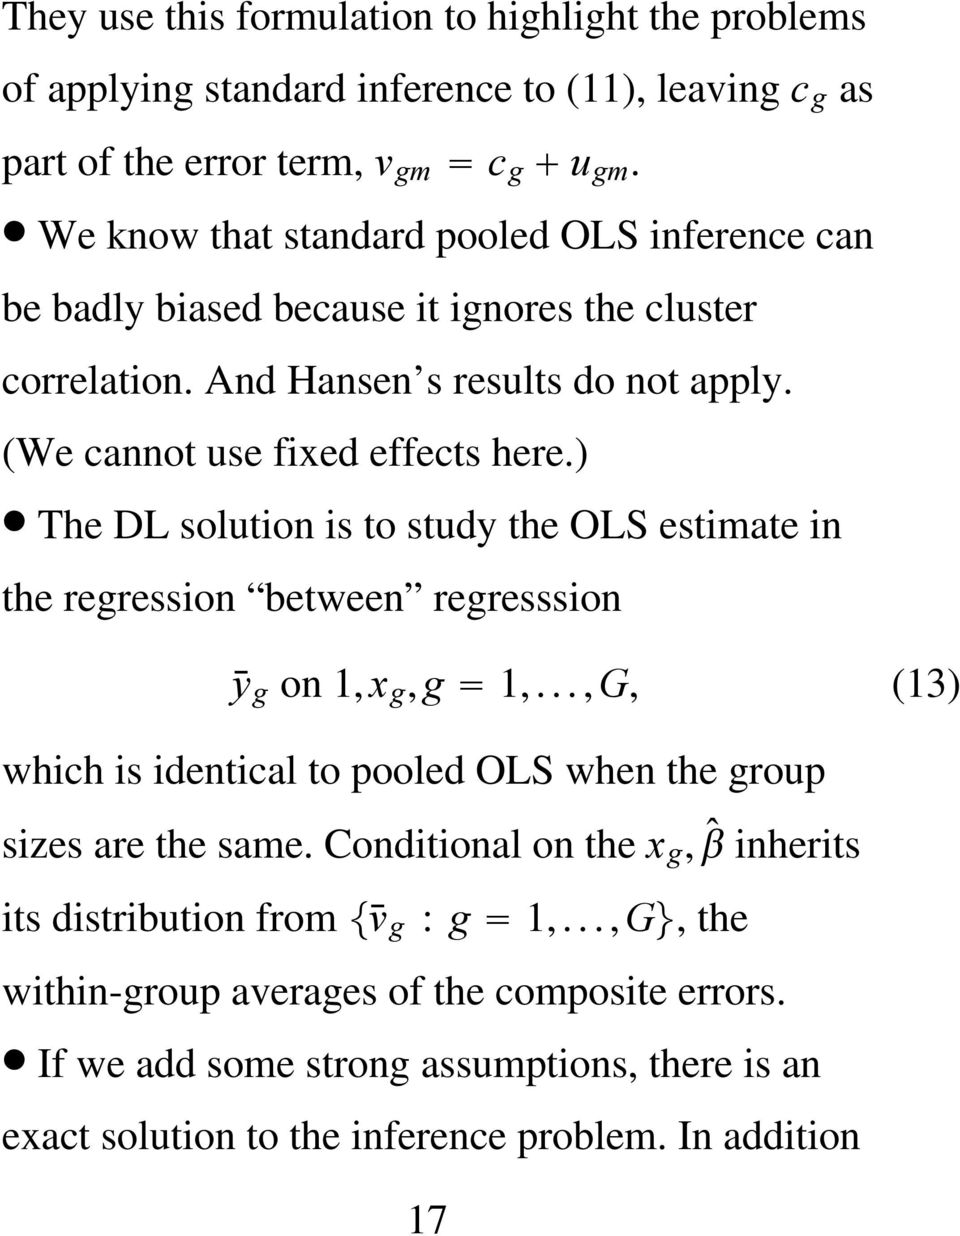 ) The DL solution is to study the OLS estimate in the regression between regresssion ȳ g on 1, x g, g 1,...,G, (13) which is identical to pooled OLS when the group sizes are the same.